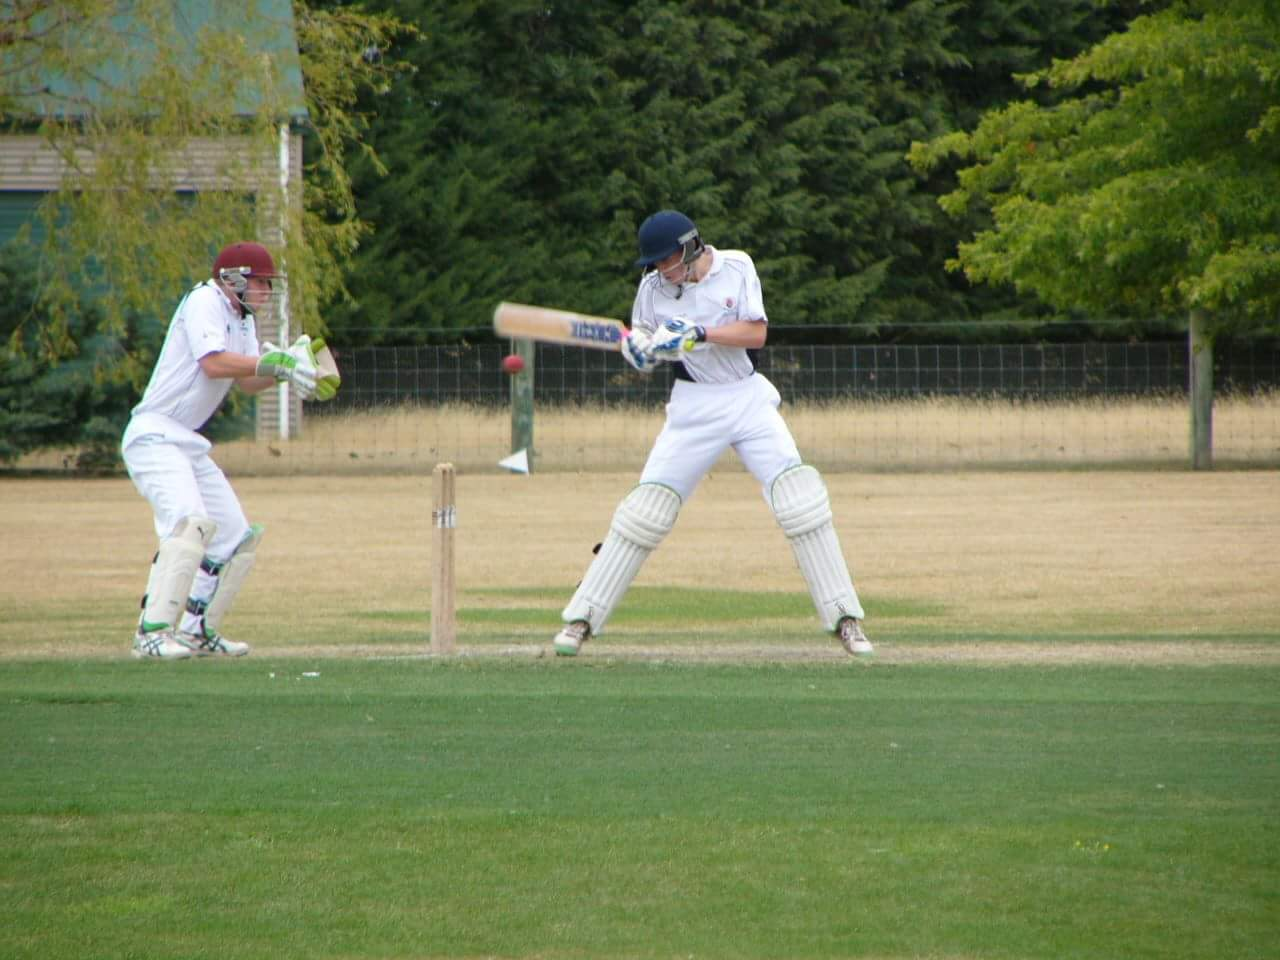 Southland cricketer Jack Mockford batting for the Governor General's Youth XI against a Willows XI in Christchurch. Photo: Supplied